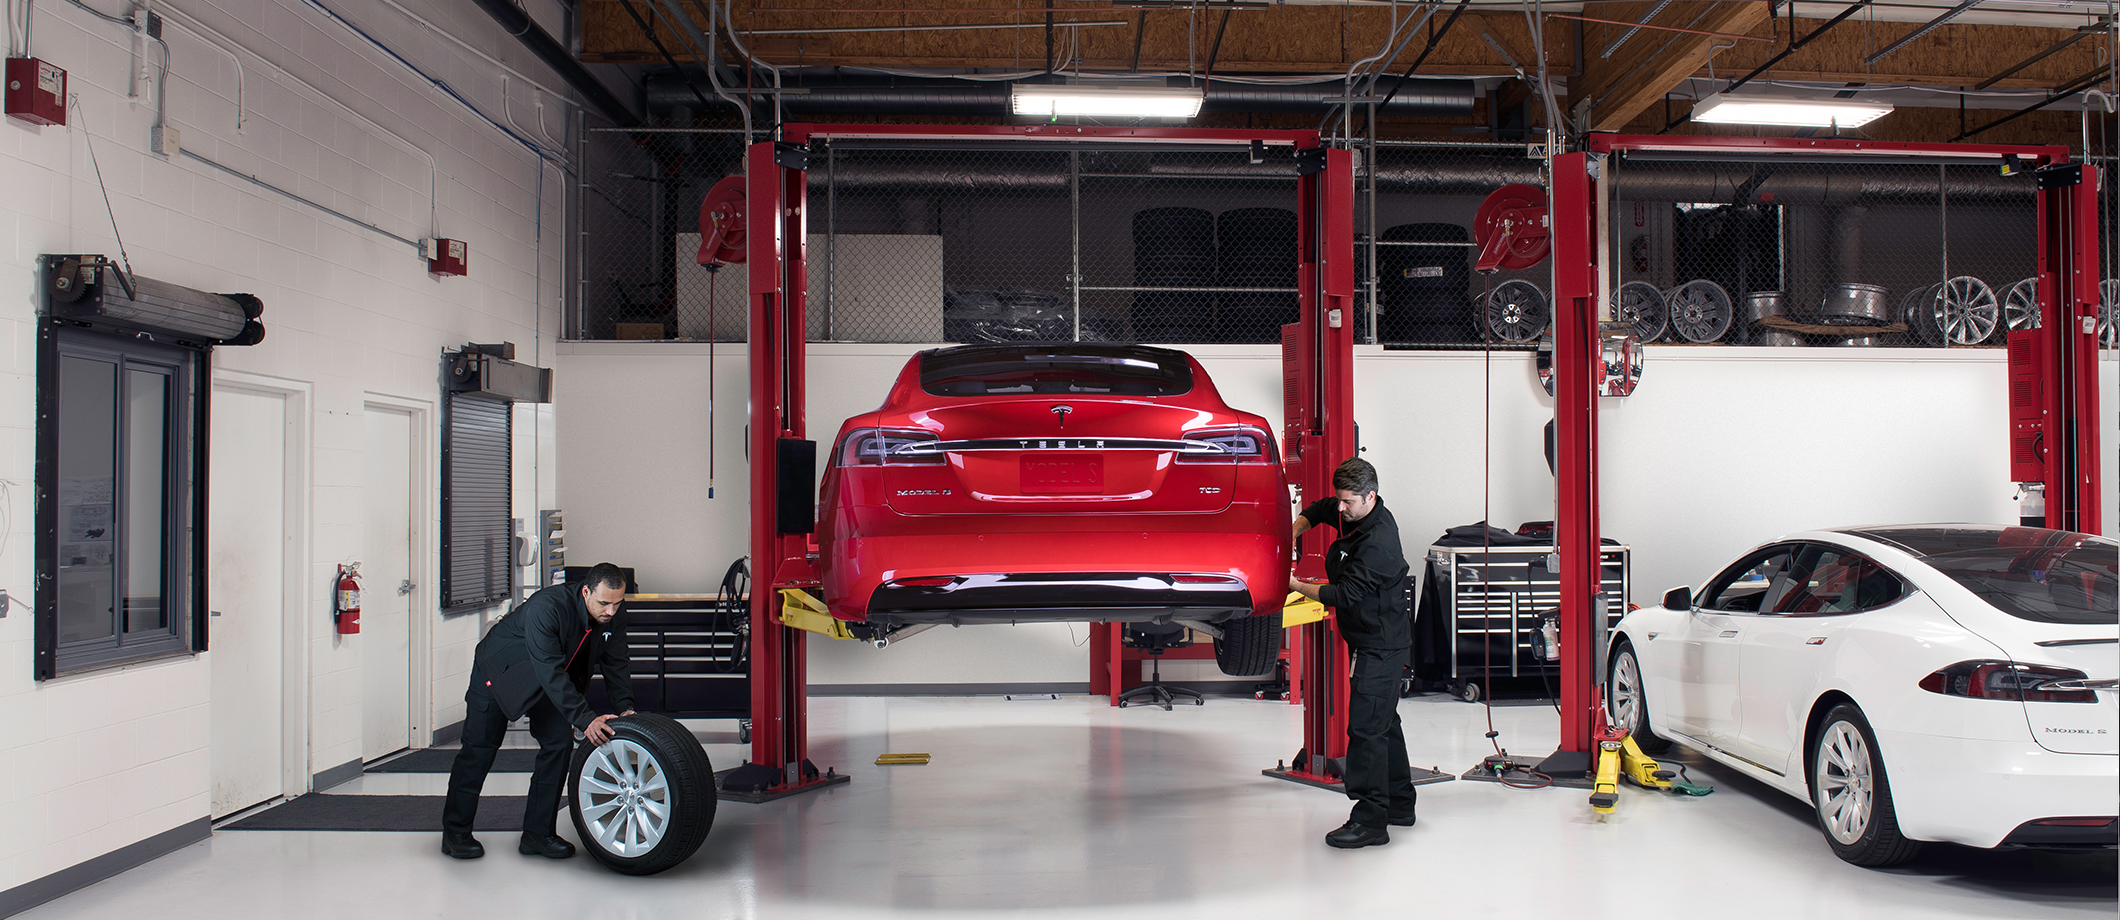 Repair Shop Tesla Is Working On Opening Up Its Service Tools And Helping